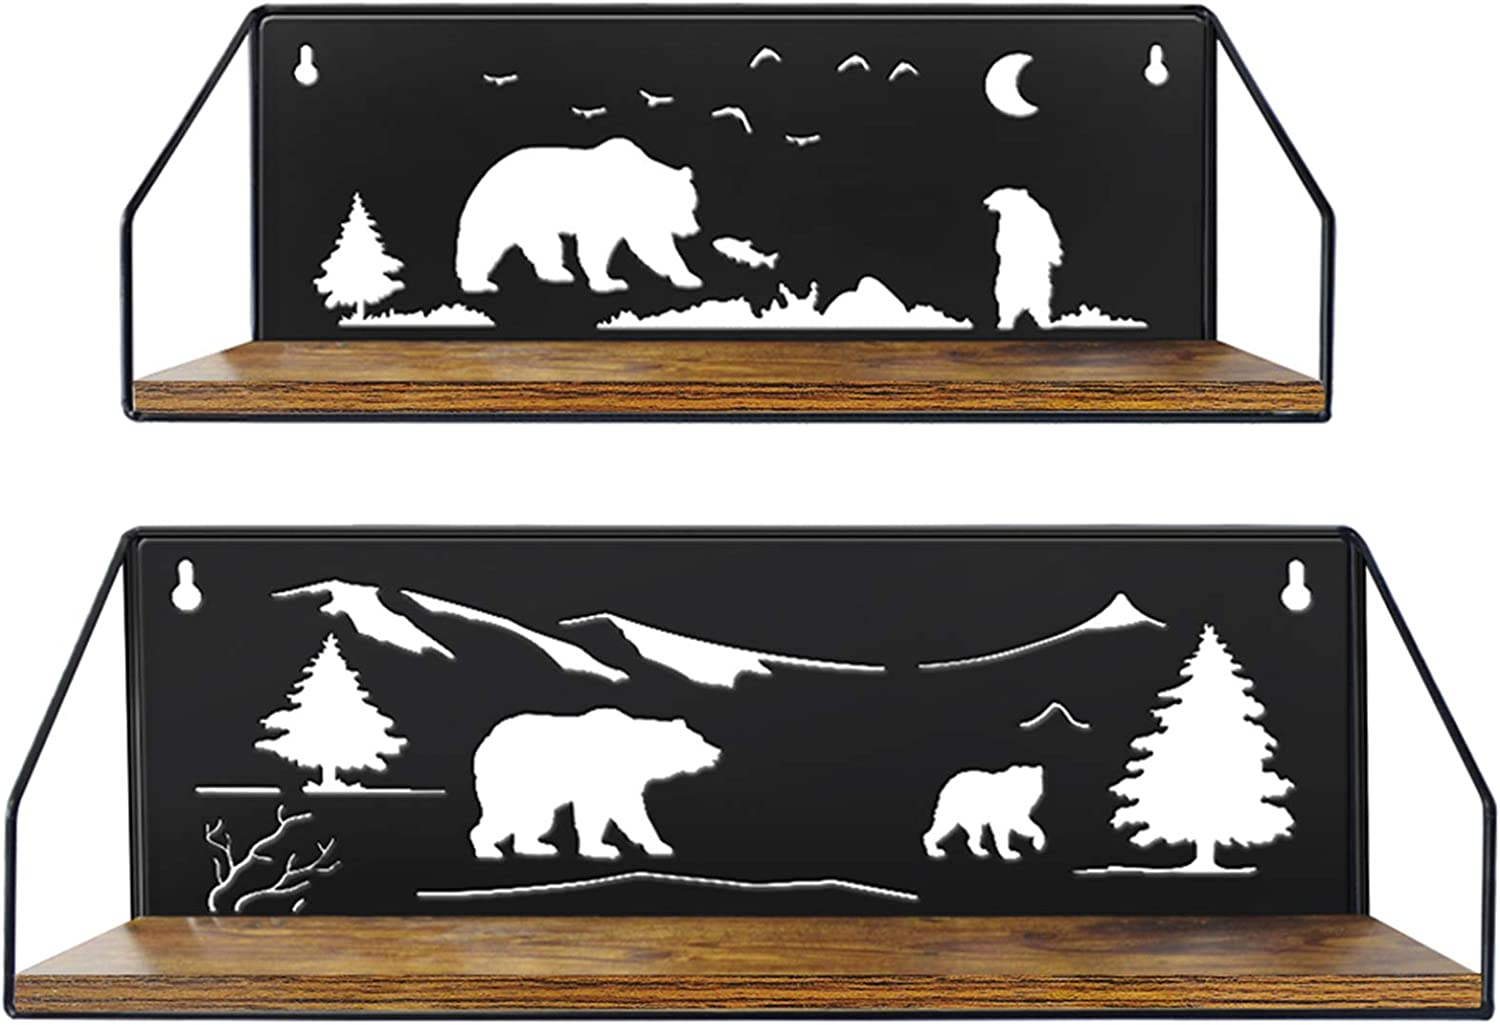 Giftgarden Floating Shelves for Wall with Unique Adorable Bears Cutouts, Rustic Wood Wall Storage Shelf Decor for Bathroom Bedroom Living Room Kitchen, Black, Set of 2